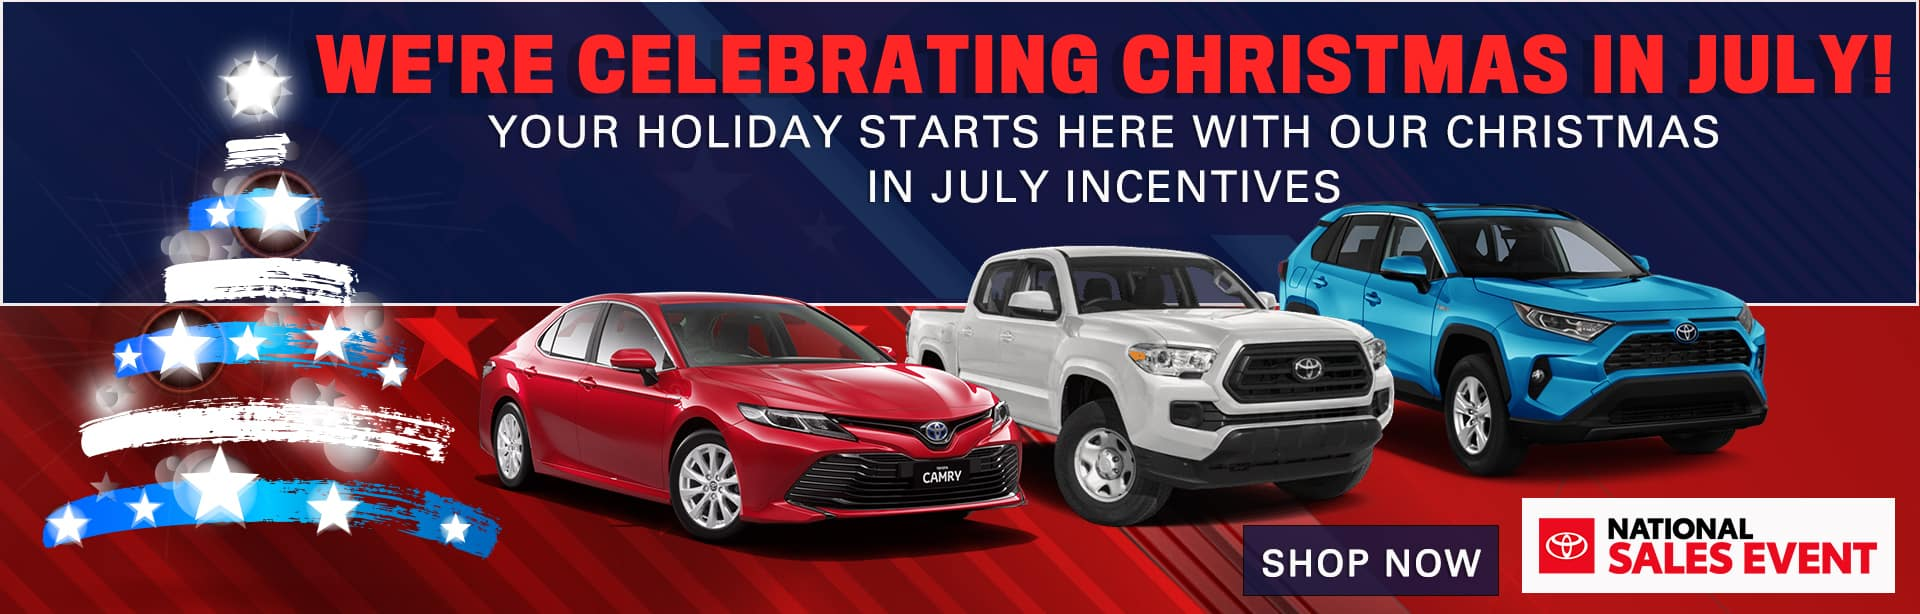 We're Celebrating Christmas In July! | Your Holiday Starts Here With Our Christmas In July Incentives